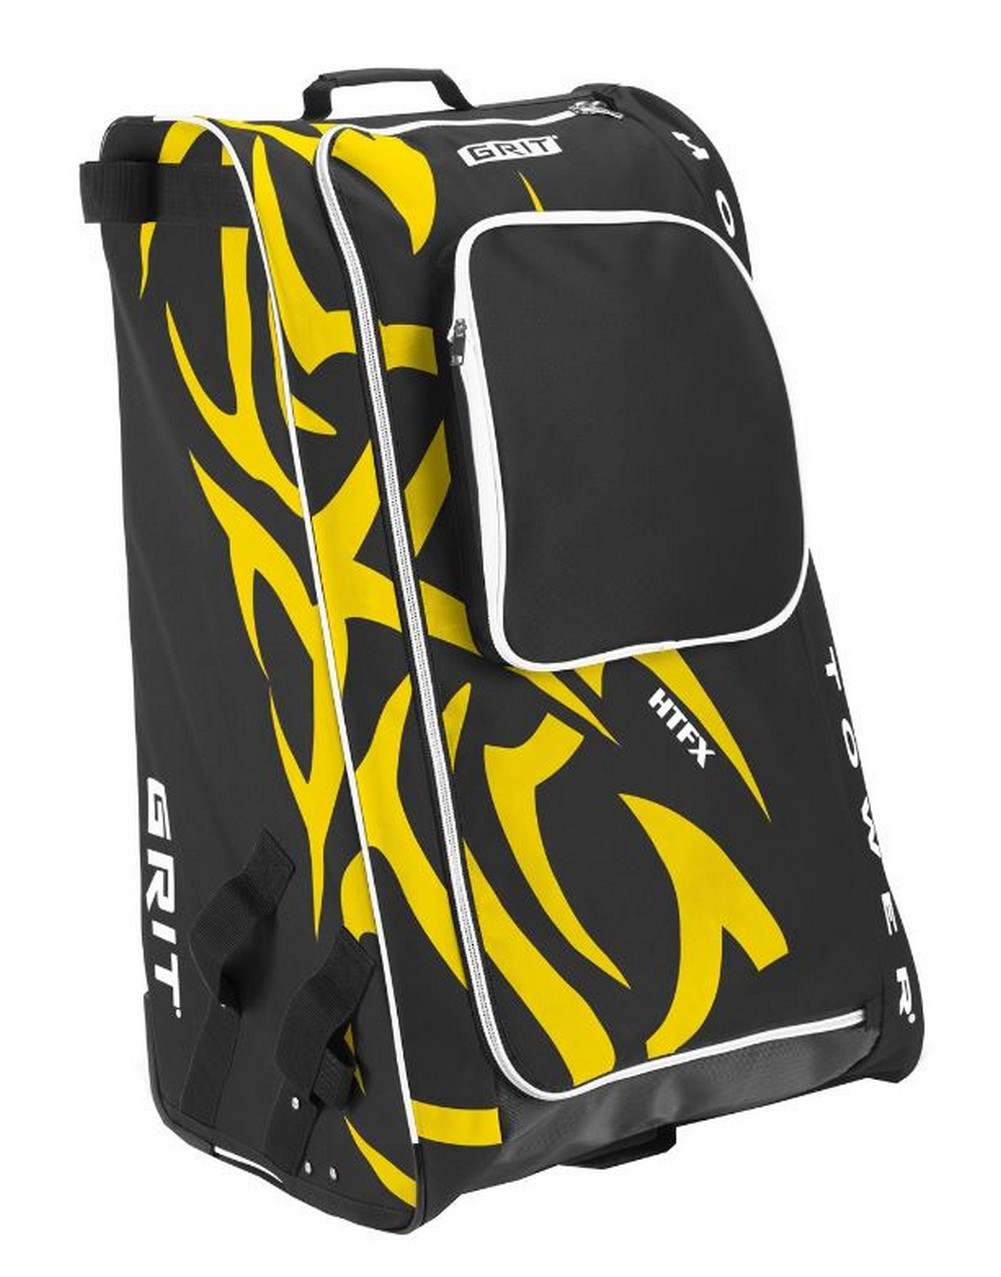 "Grit Inc HTFX Hockey Tower 33"" Wheeled Equipment Bag Yellow HTFX033-BO (Boston) by Grit Inc."